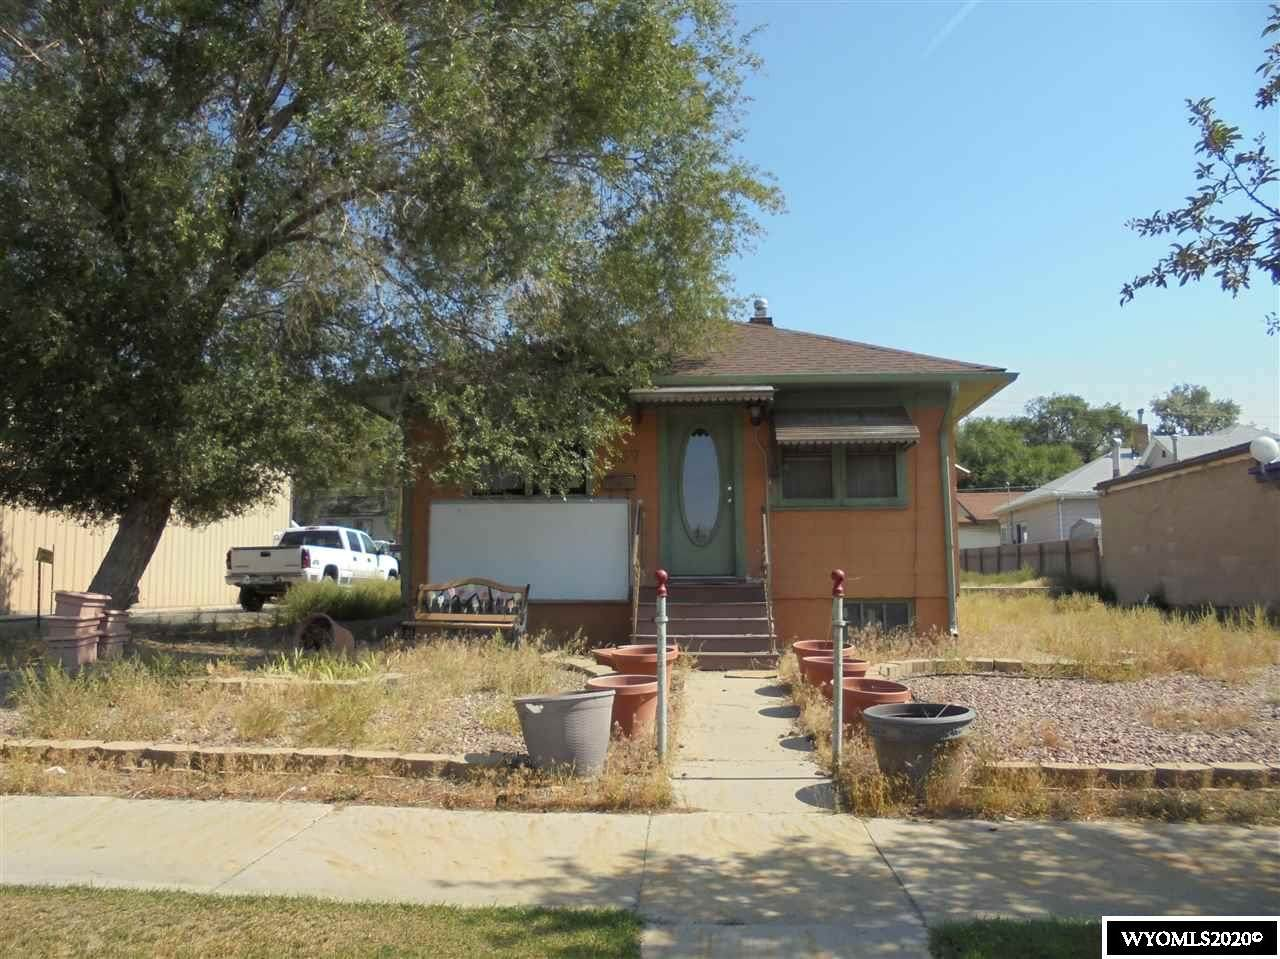 367 E. Flaming Gorge Way - Photo 1